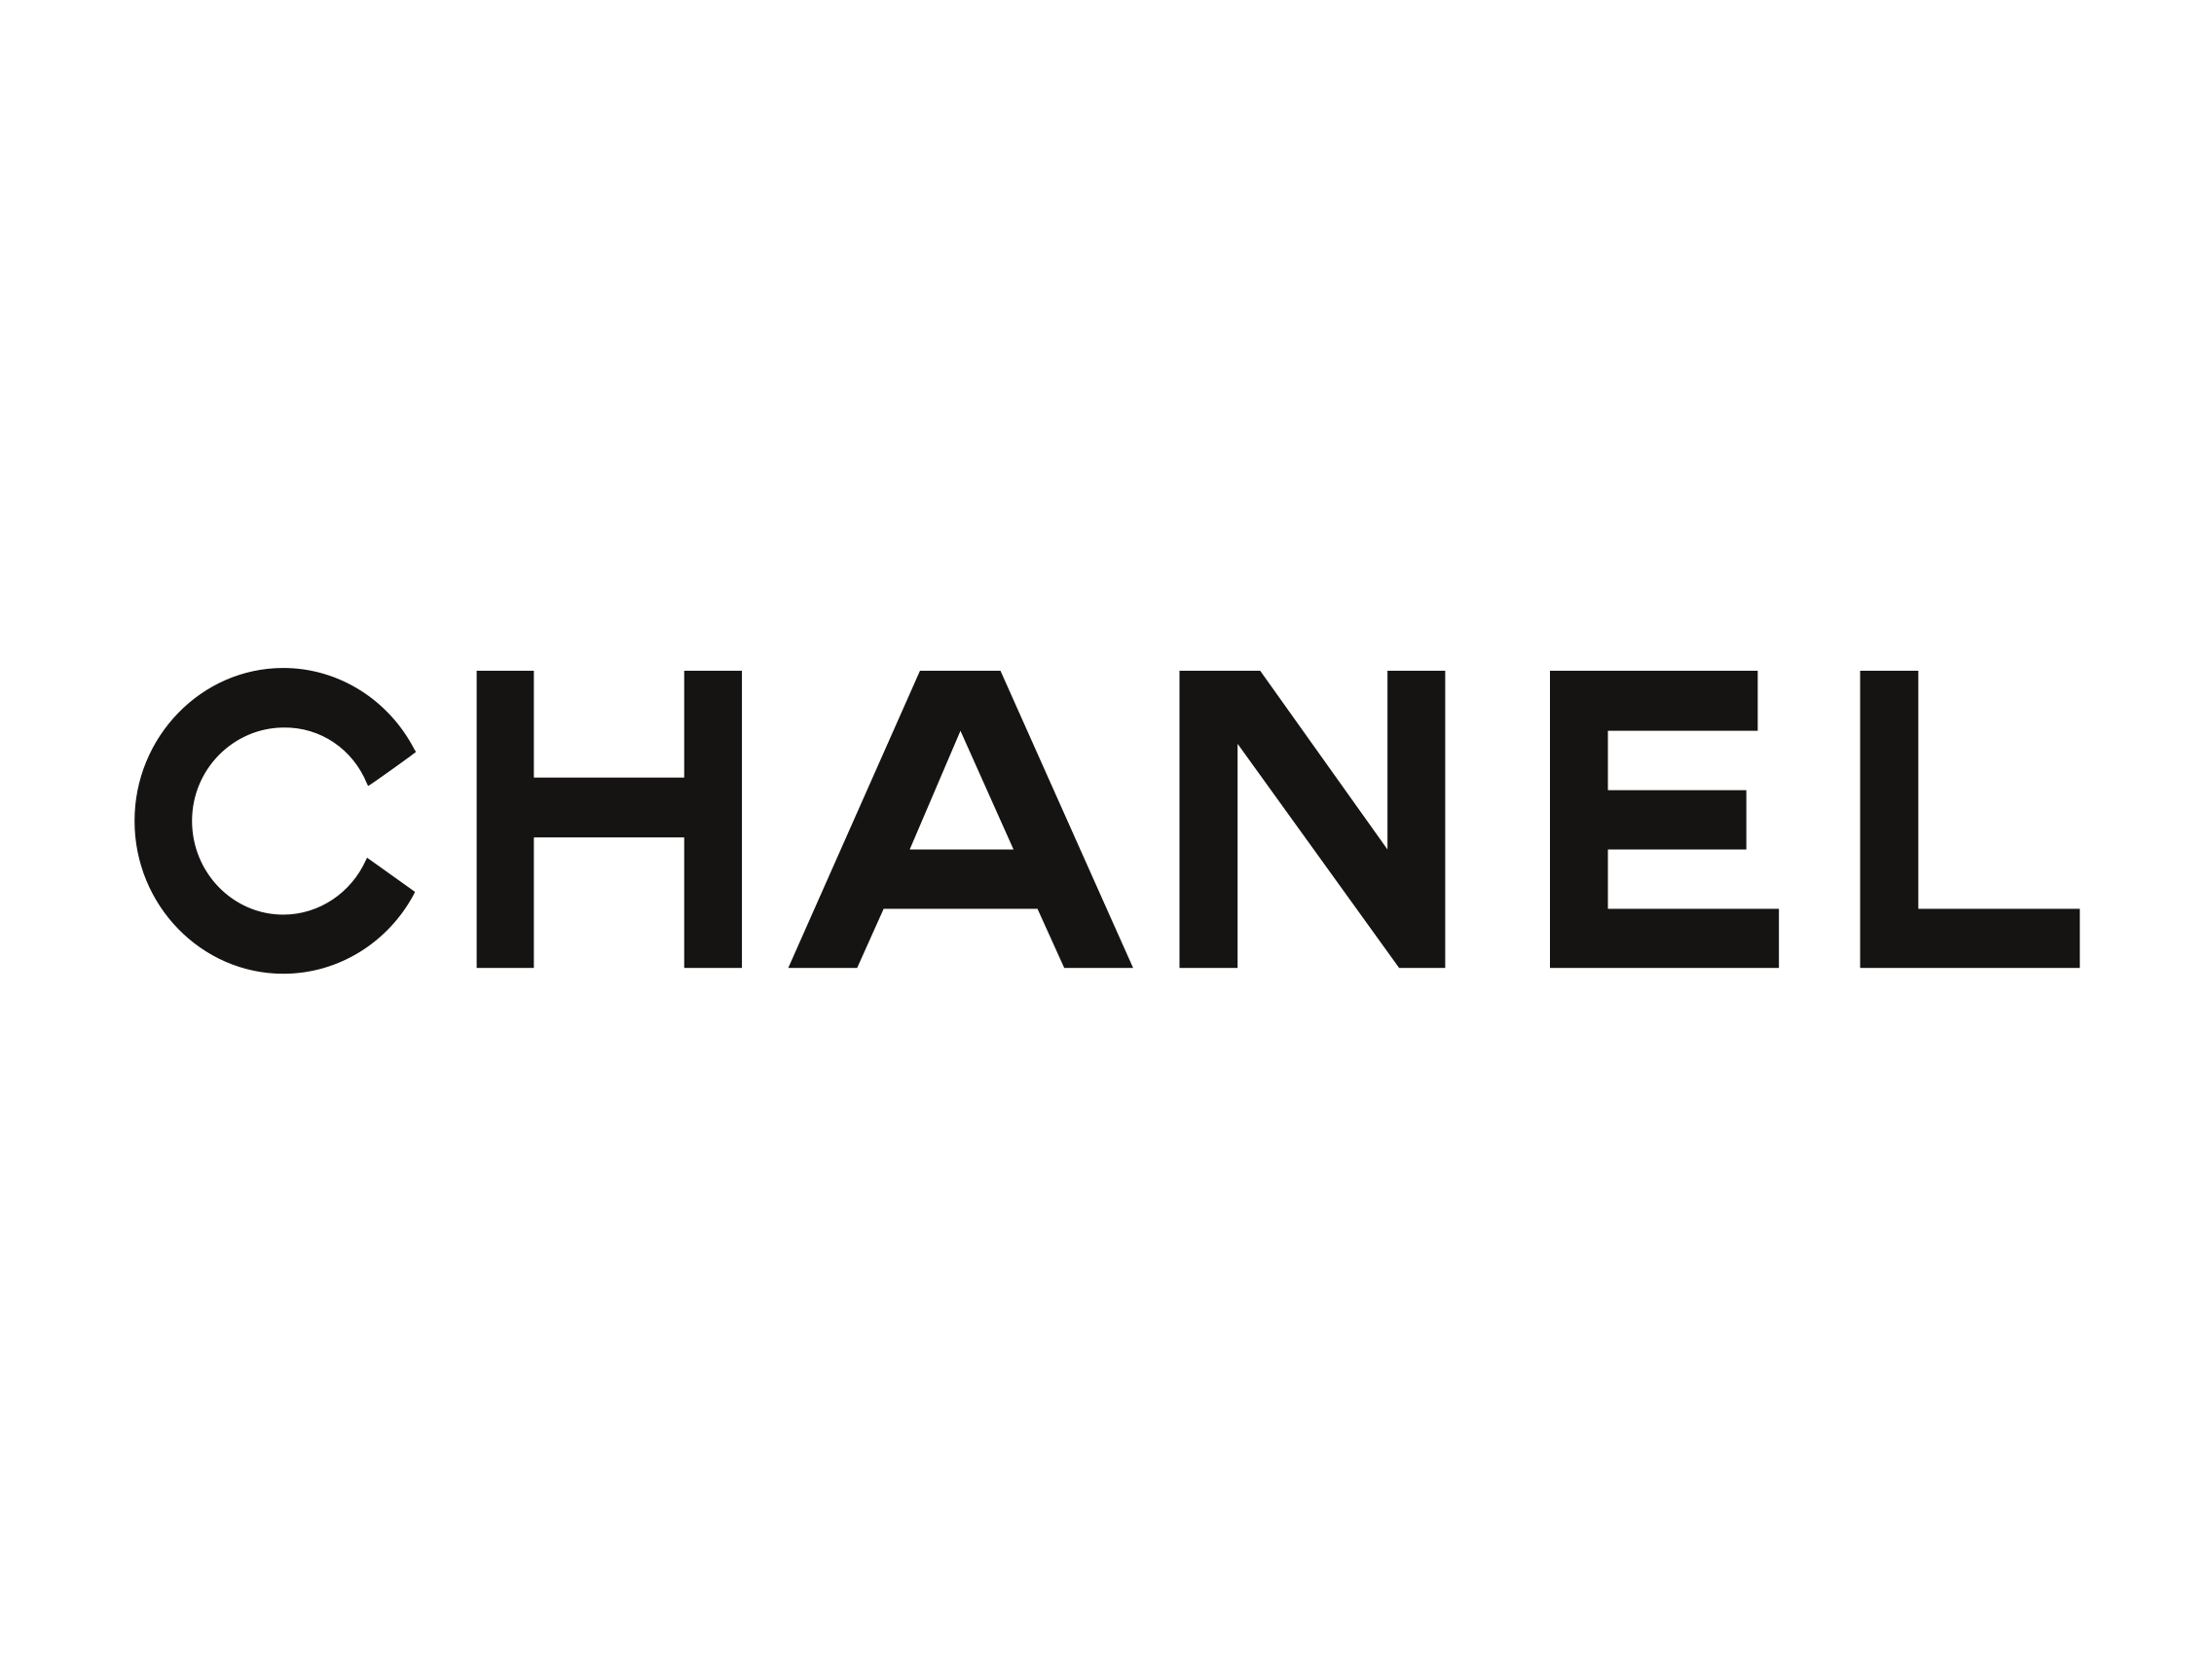 Logo Perfume Chanel Earring PNG Download Free PNG Image